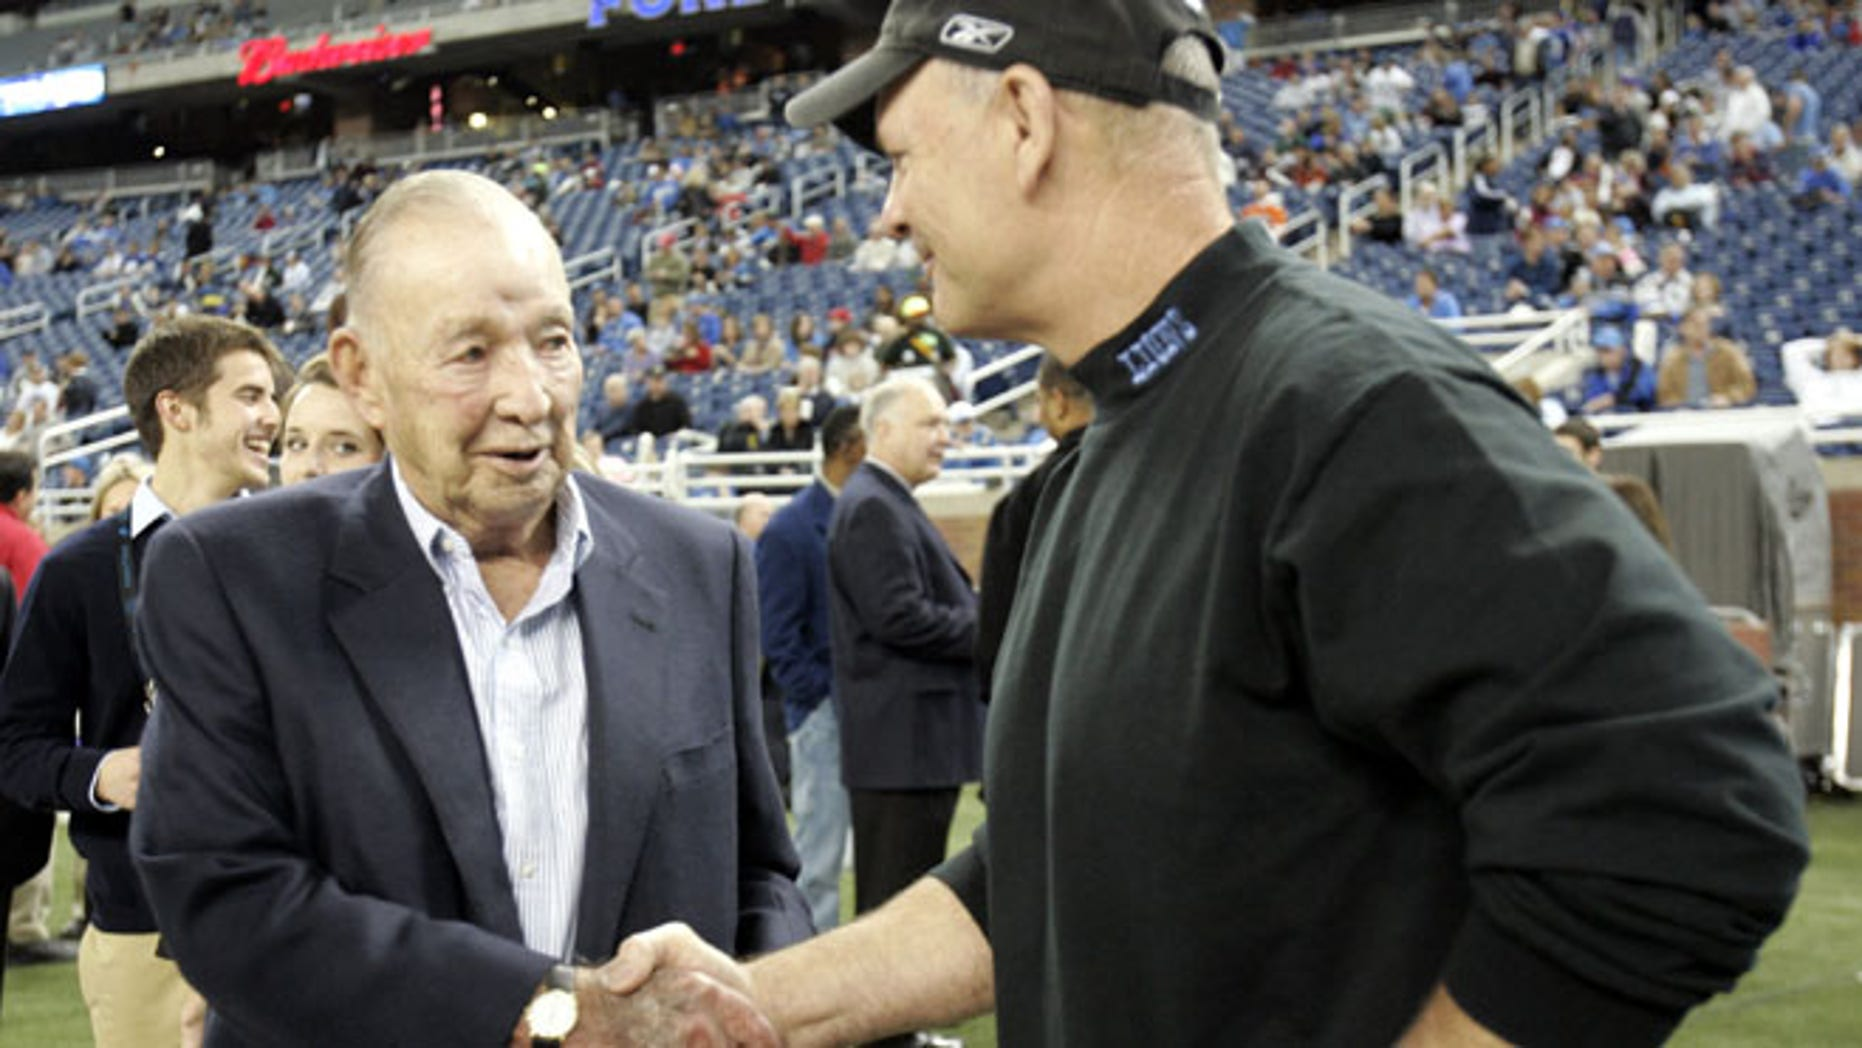 Detroit Lions team owner William Clay Ford Sr. (L) shakes hands with Lions head coach Rod Marinelli before the start of their NFL football game against the New York Giants in Detroit, Michgan November 18, 2007.  REUTERS/Rebecca Cook  (UNITED STATES) - RTX33KD